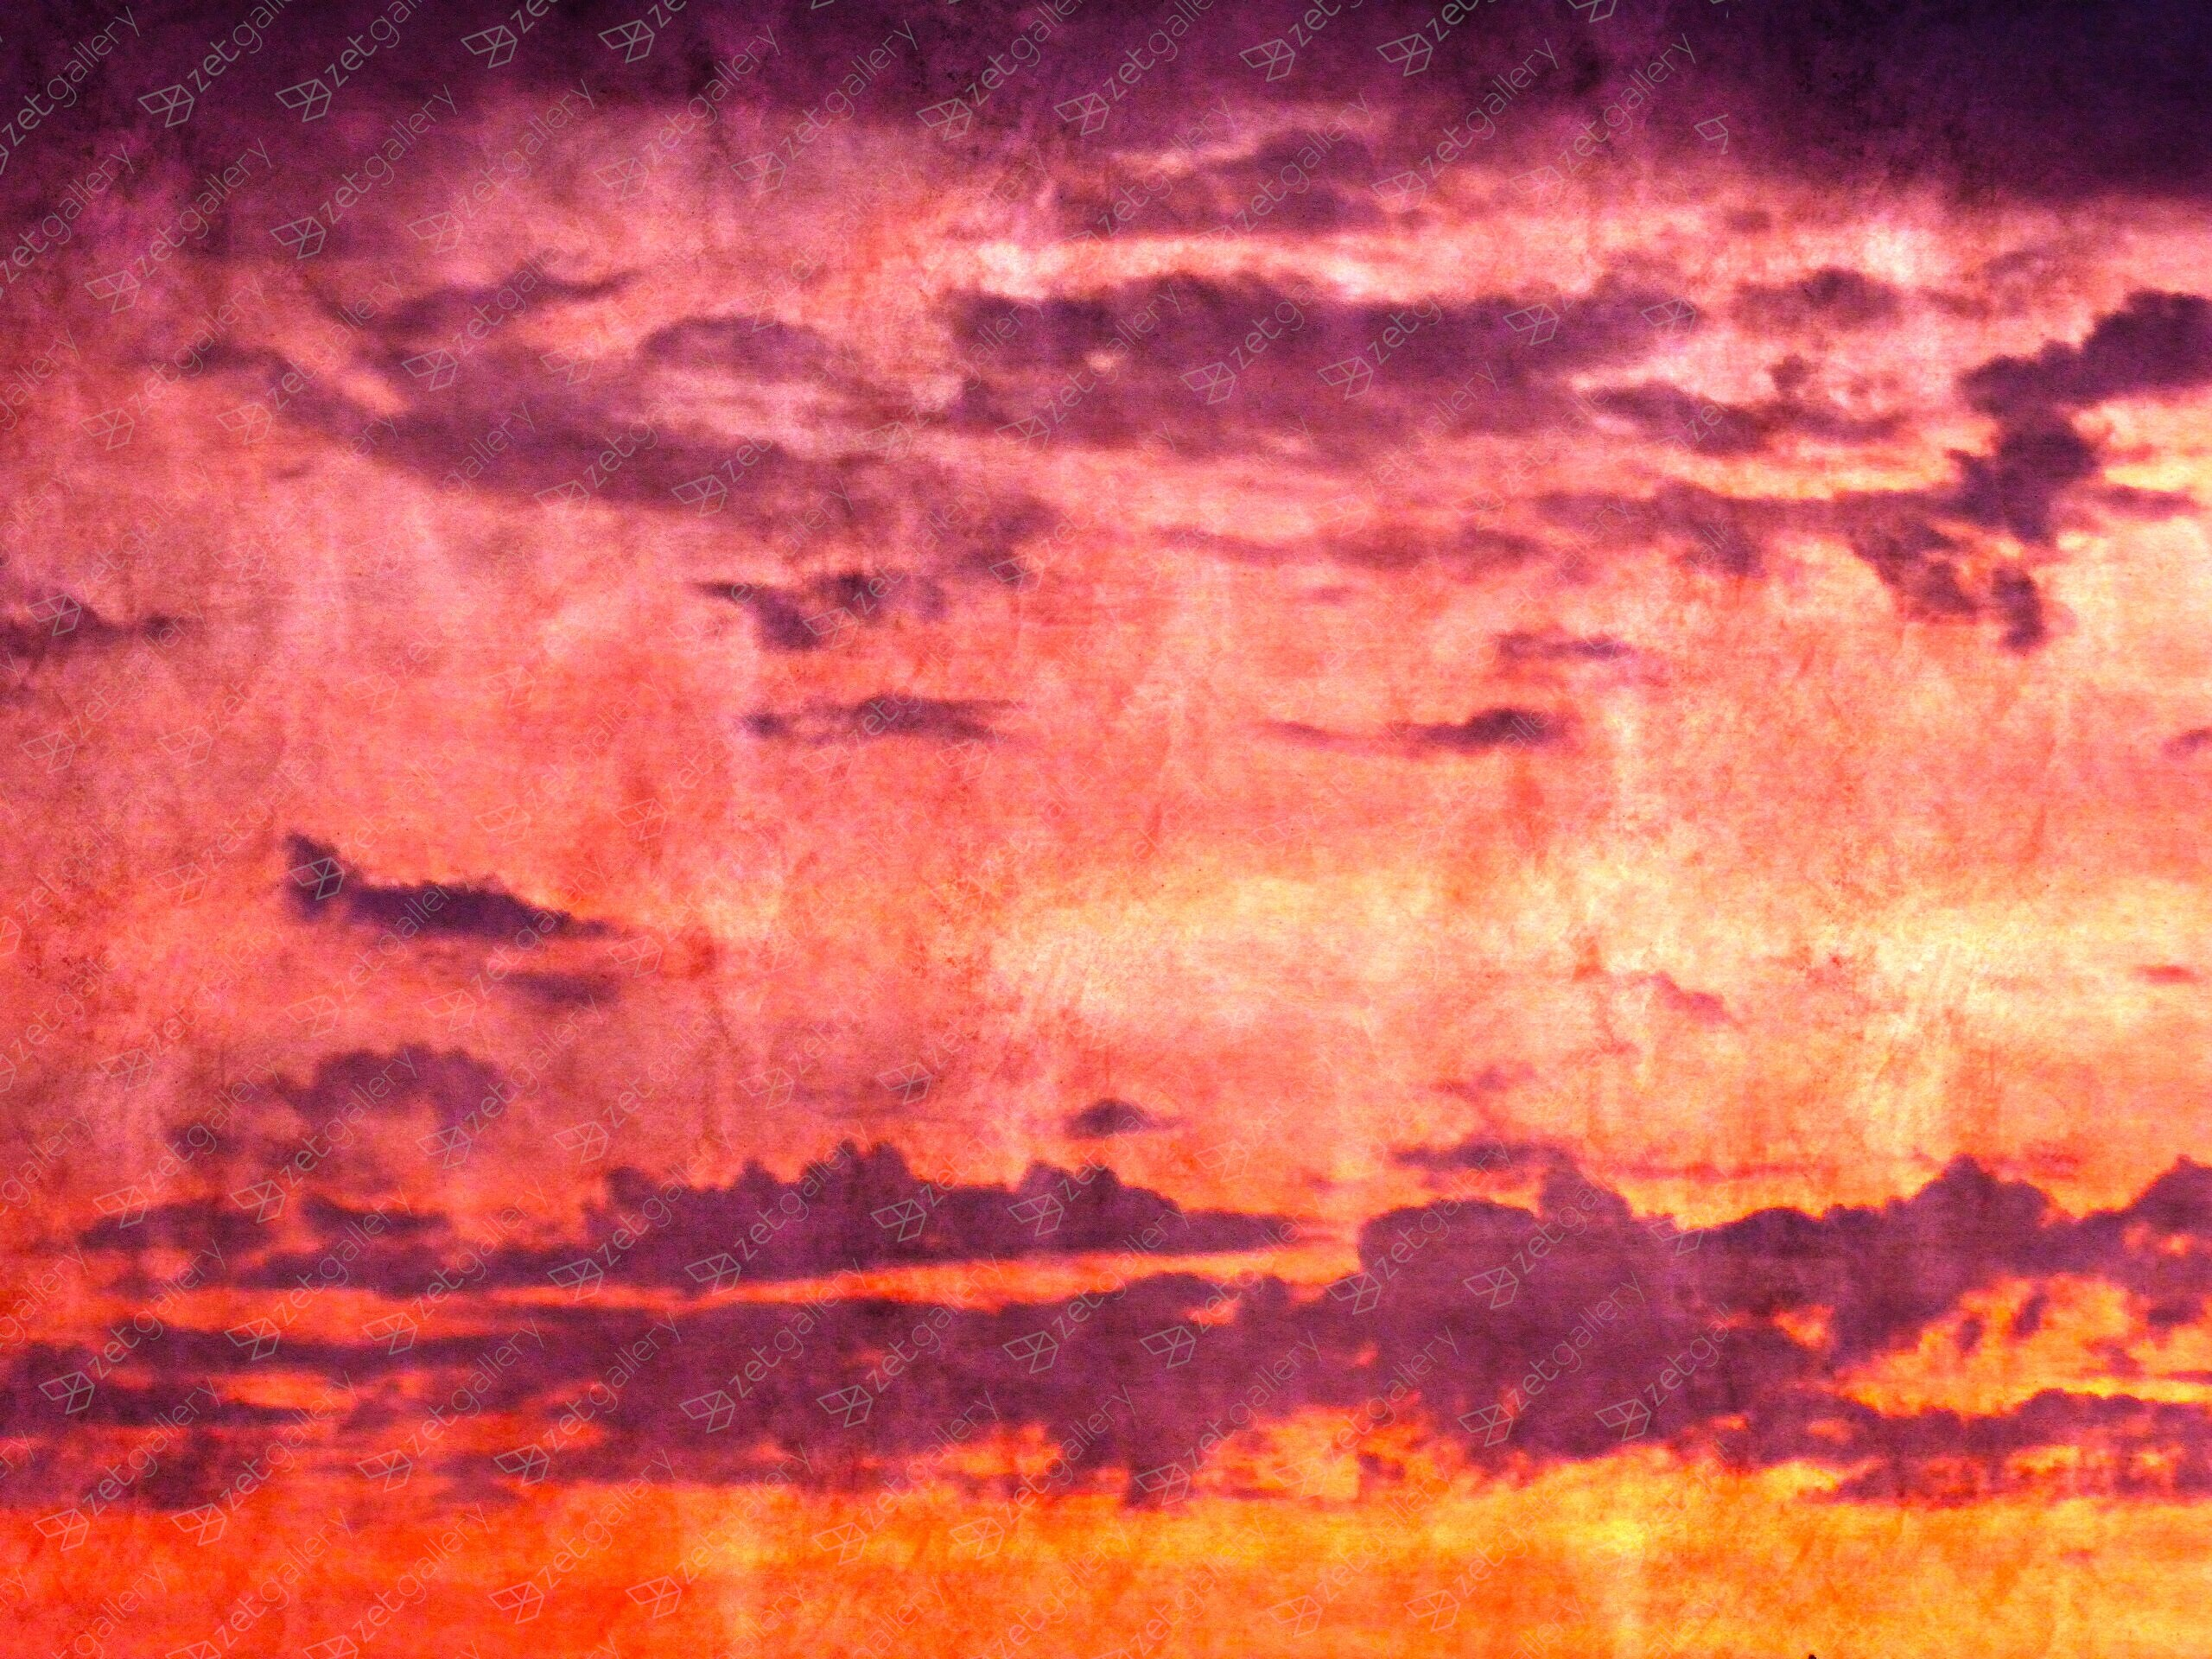 THE sky #475, original Abstract Digital Photography by Magdalena Kaczmarczyk